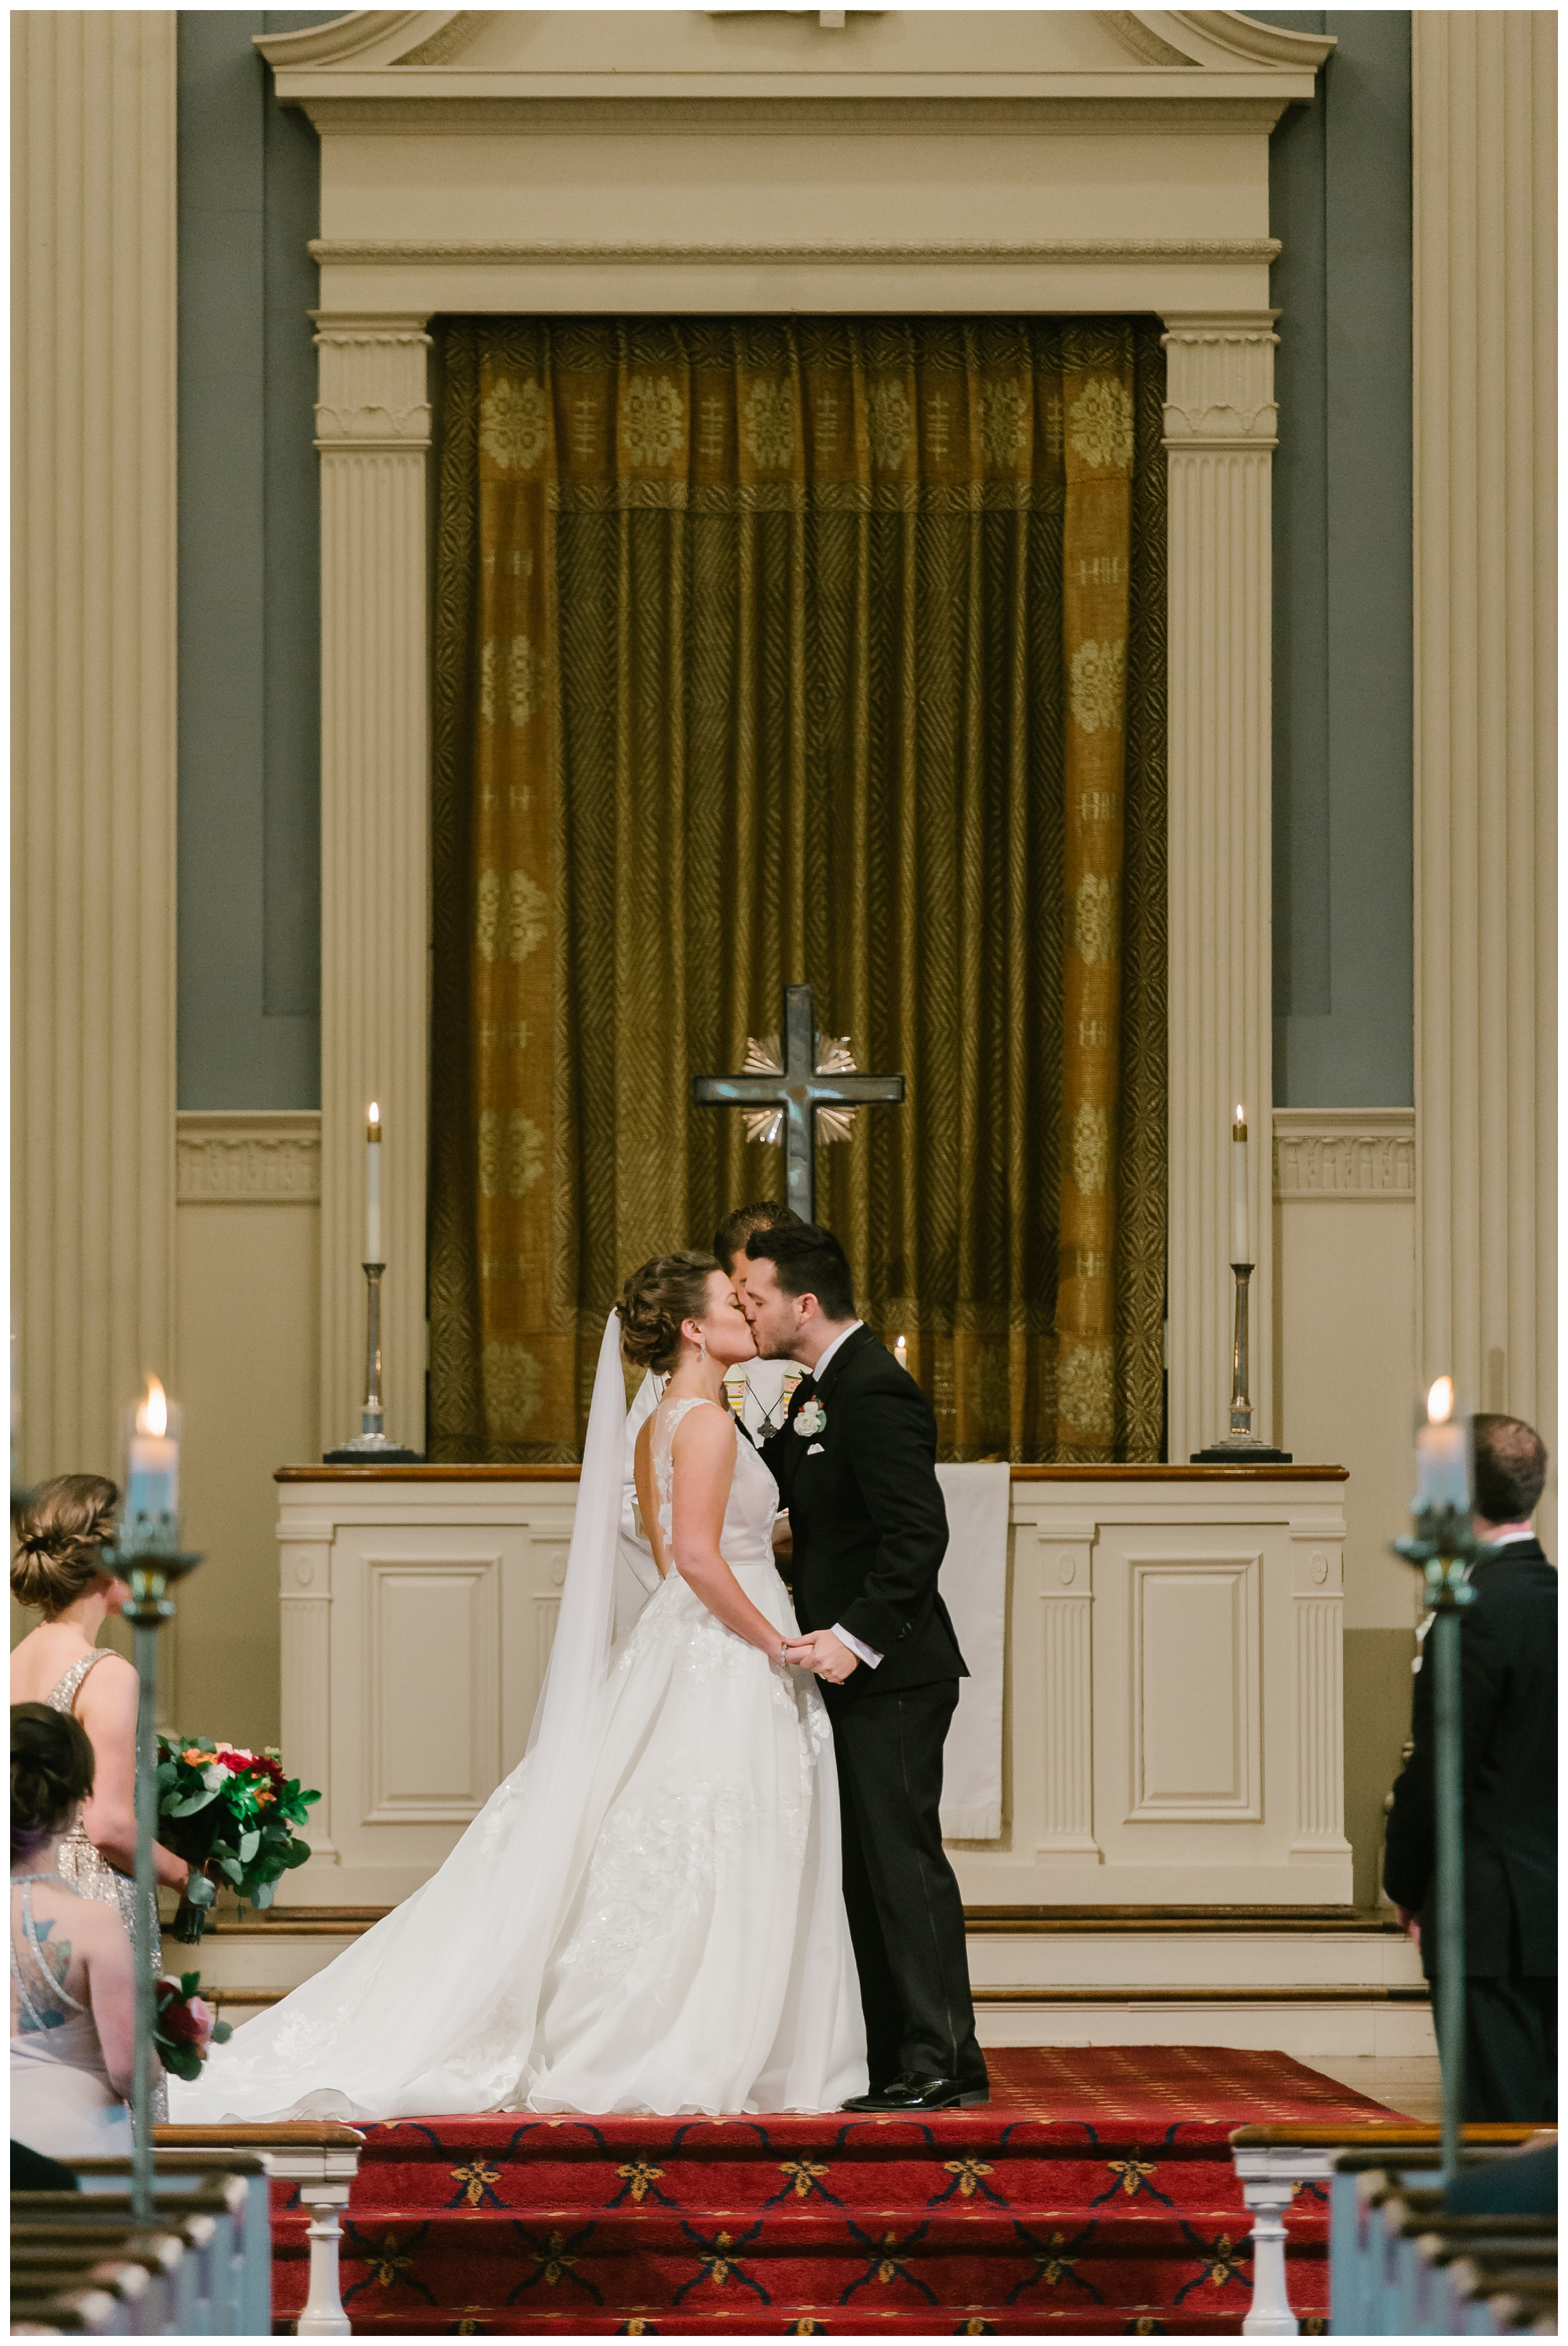 Rebecca_Shehorn_Photography_Indianapolis_Wedding_Photographer_7750.jpg